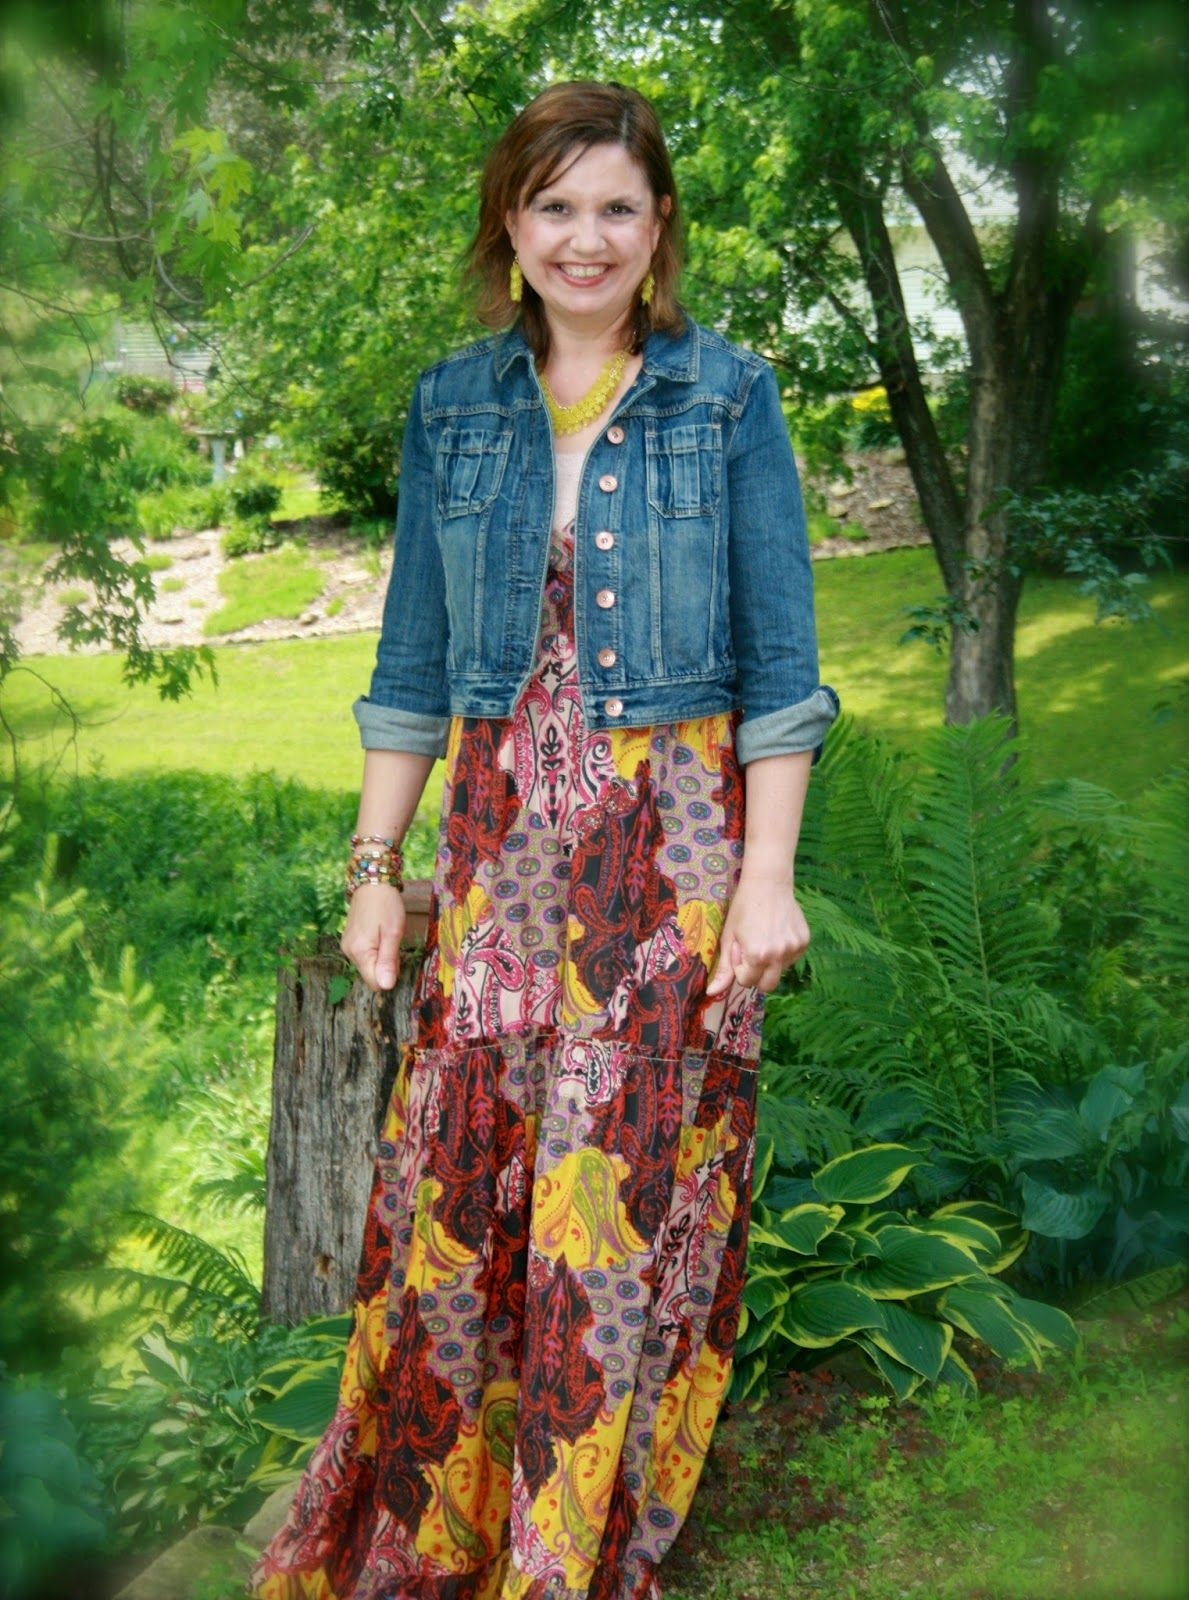 10 Summer Fashion Tips For Women Over 50